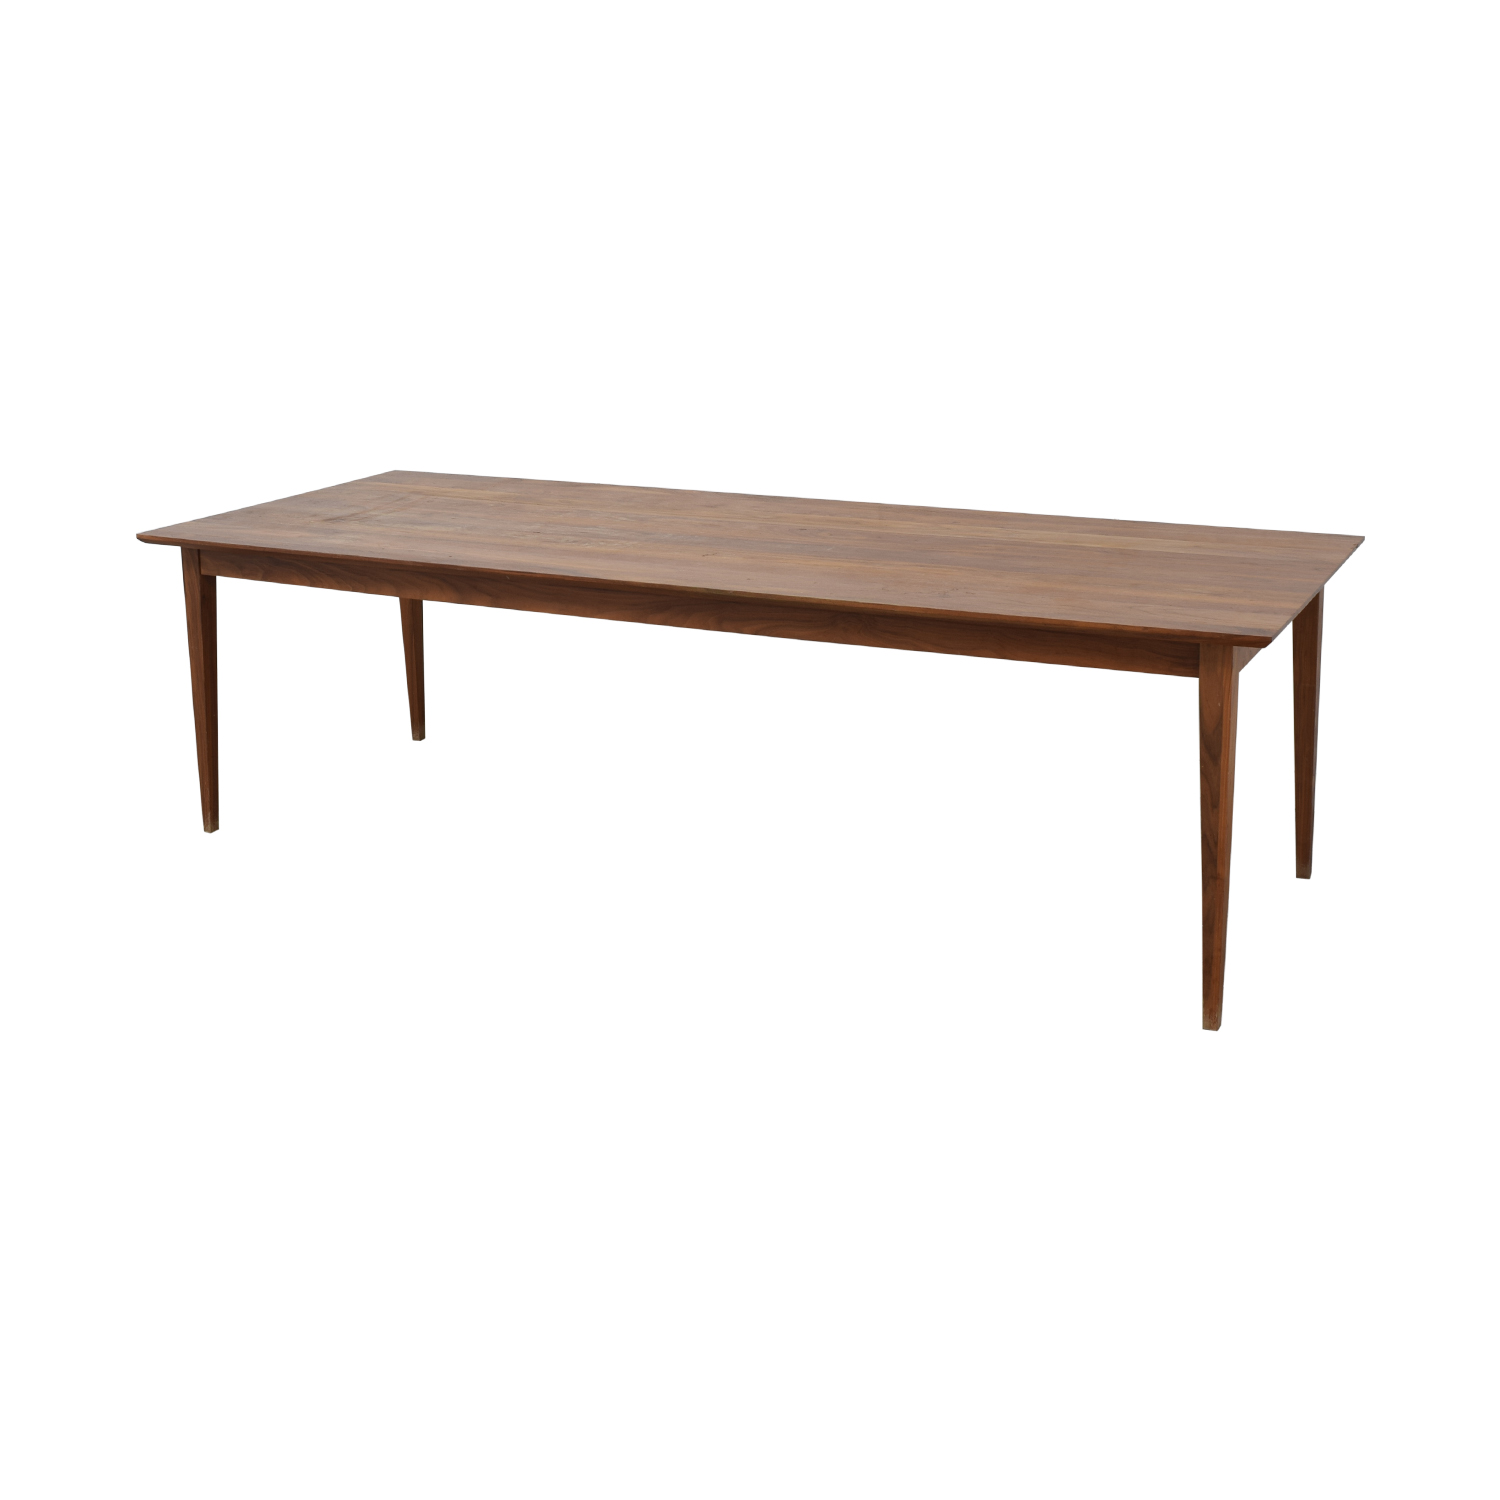 Room & Board Room & Board Adams Extension Table second hand